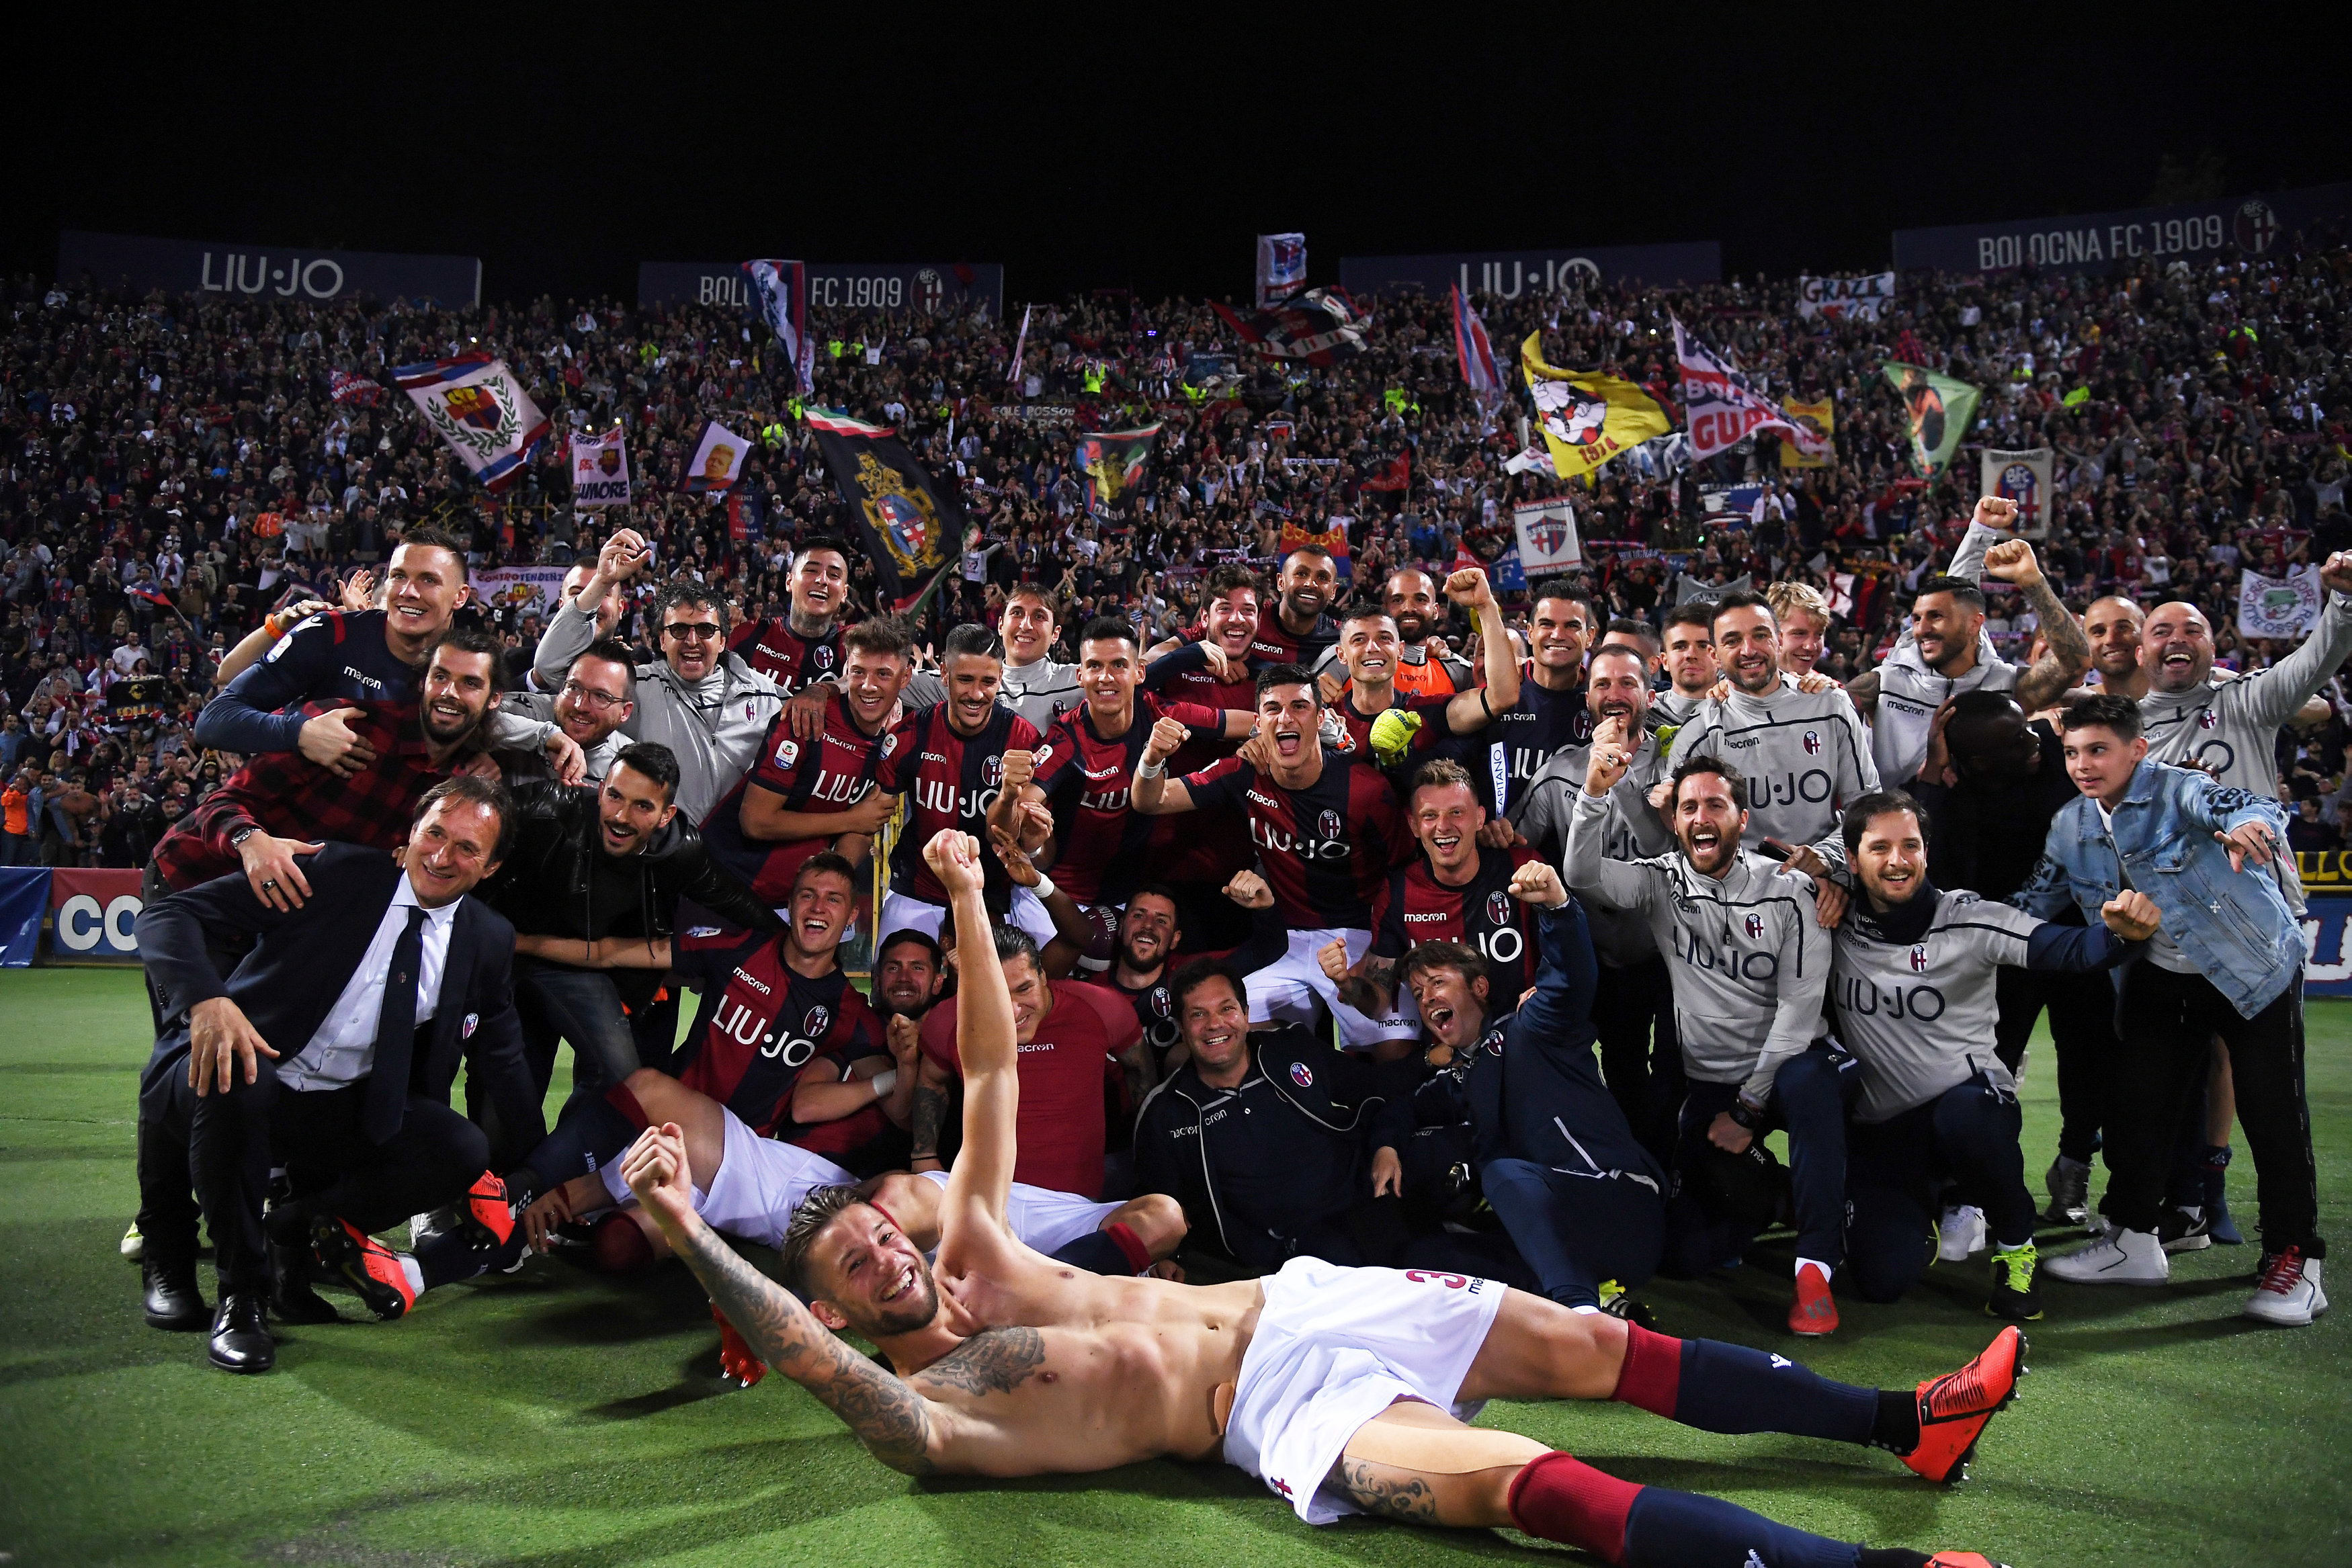 Bologna FC Players Salaries 2019/20 (Weekly Wages)